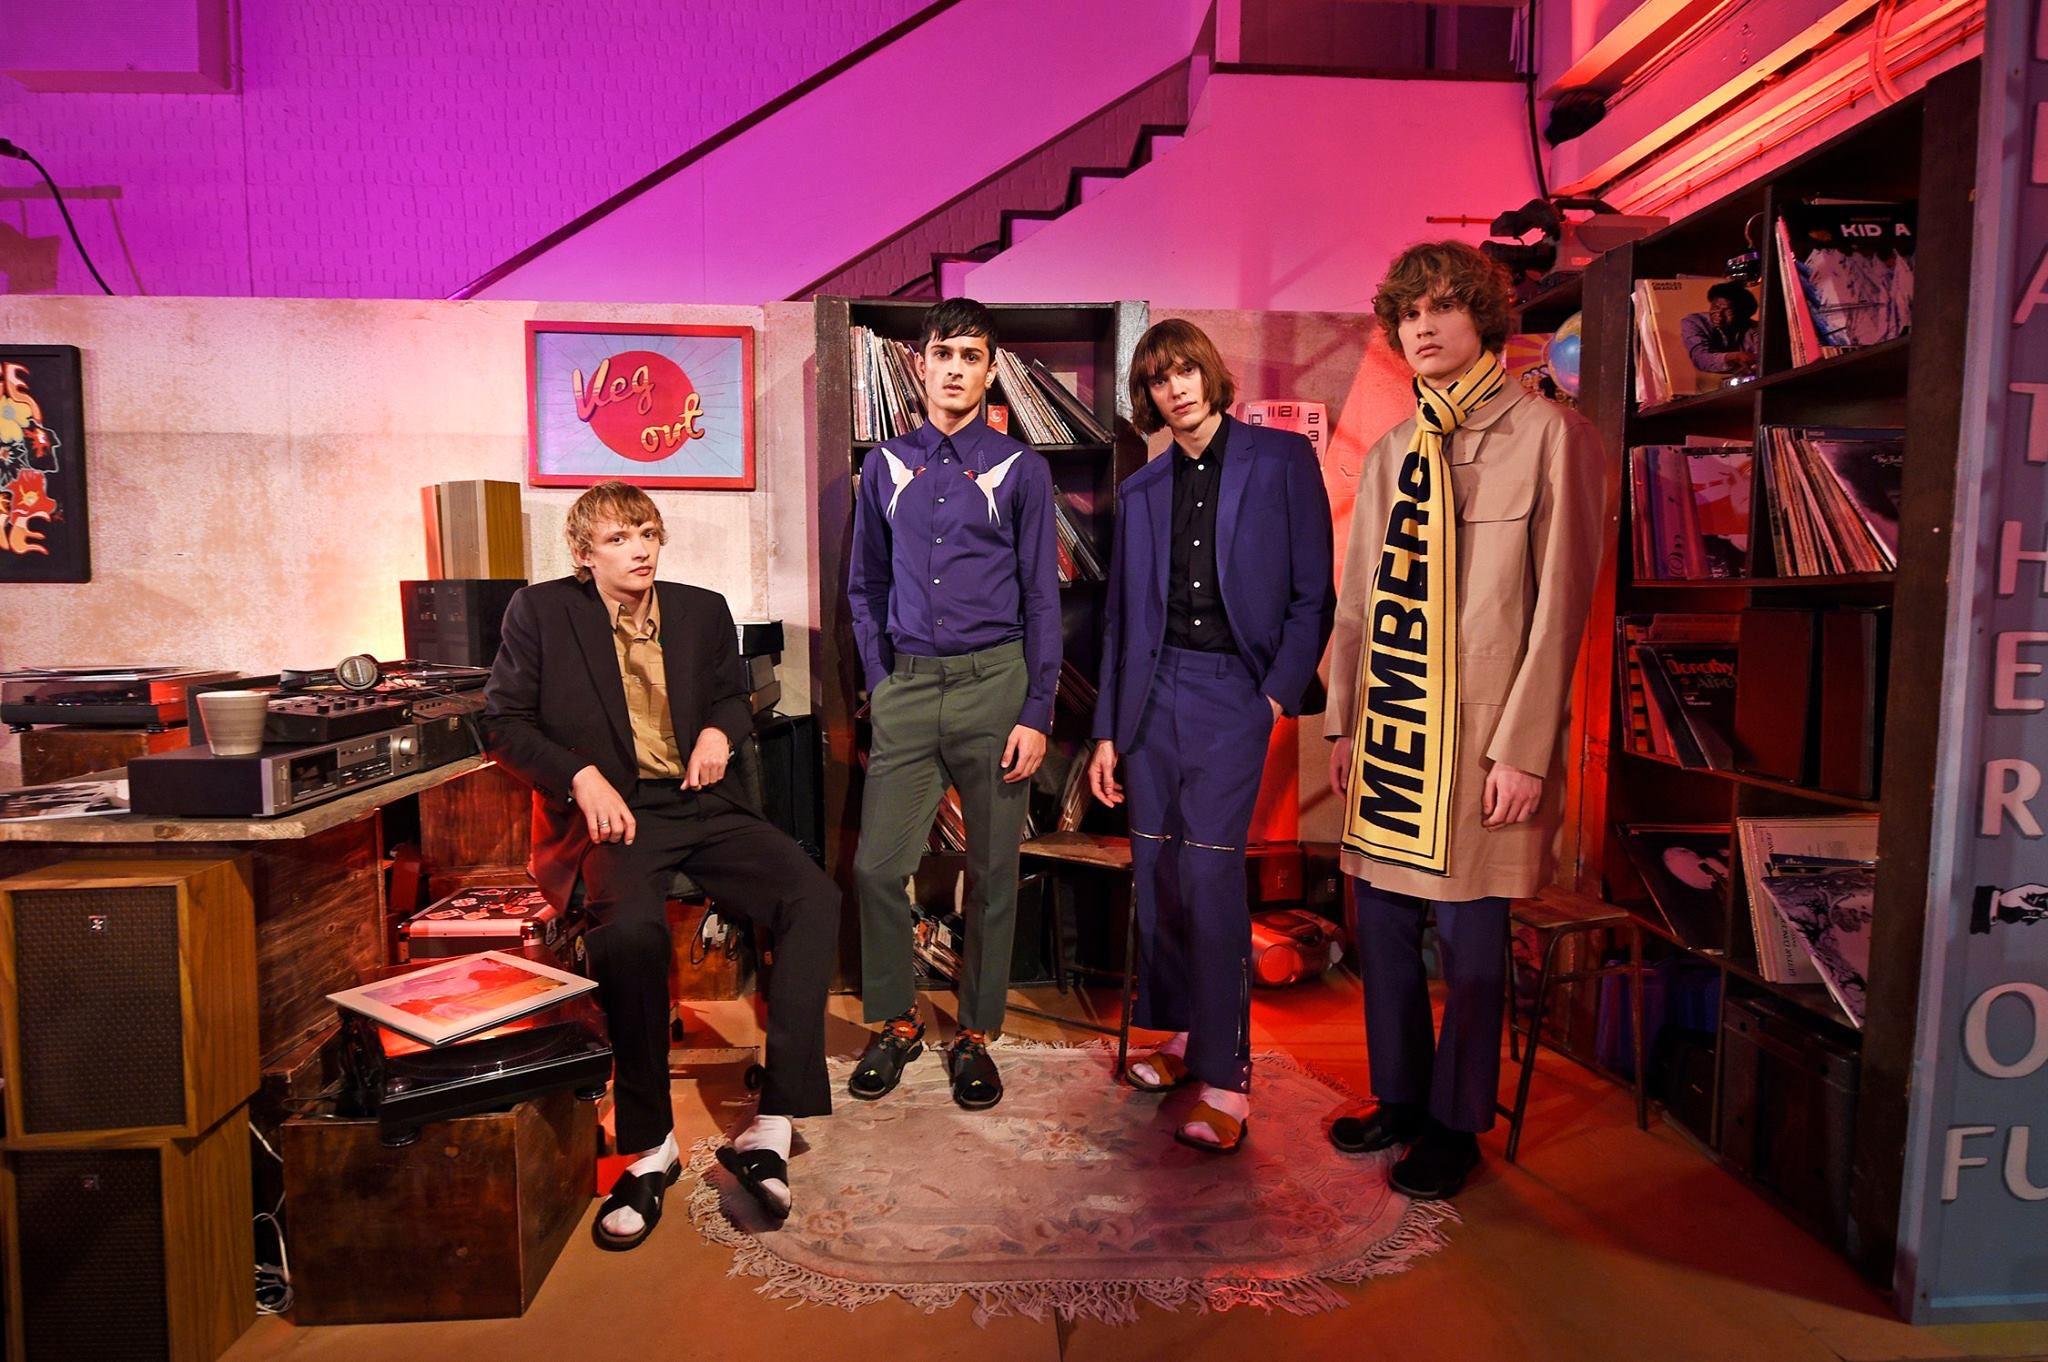 Stella McCartney Inspired by Dad for Debut Men's Fashion Line